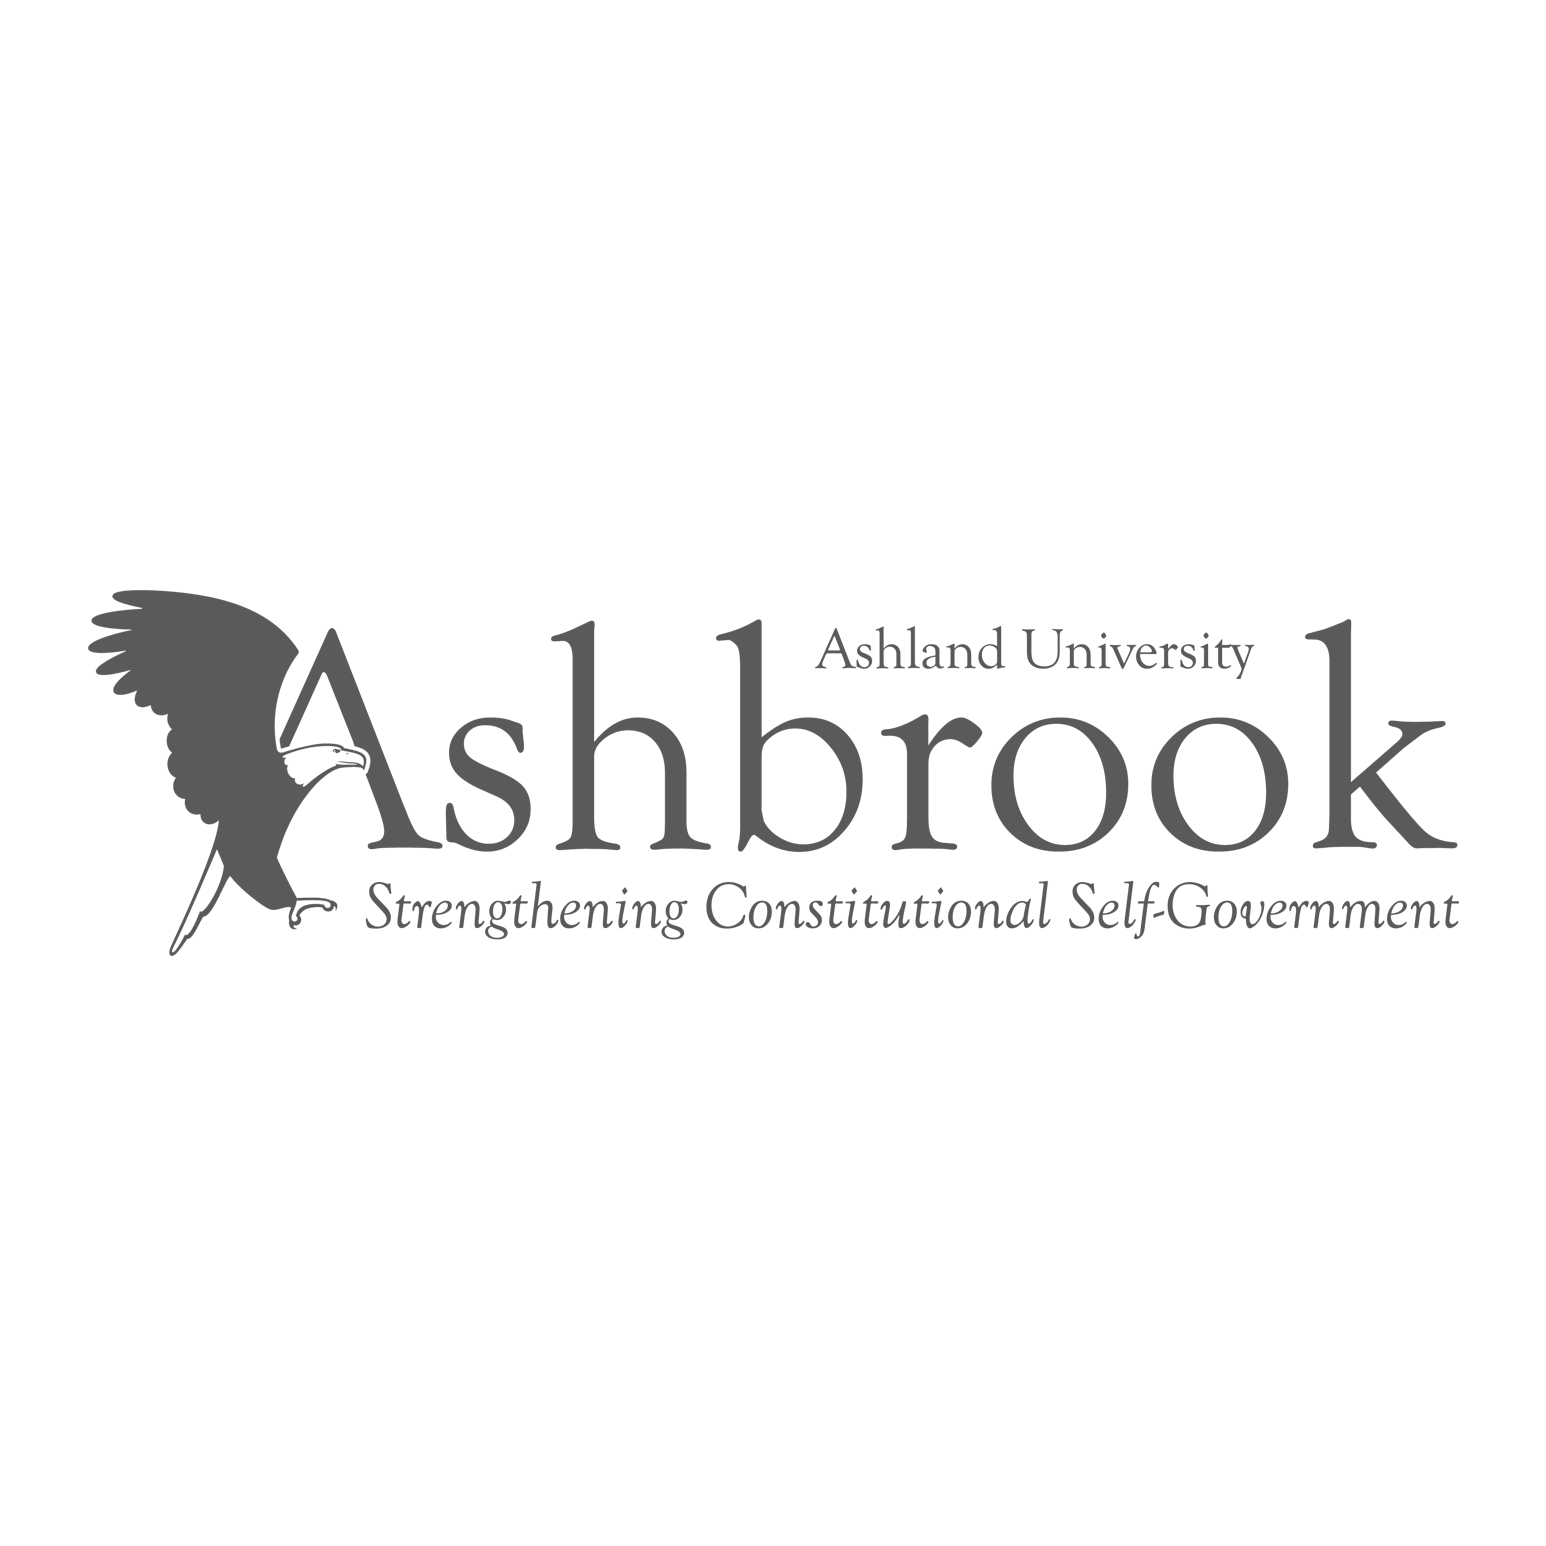 Ashbrook Center's TeachingAmericanHistory.org